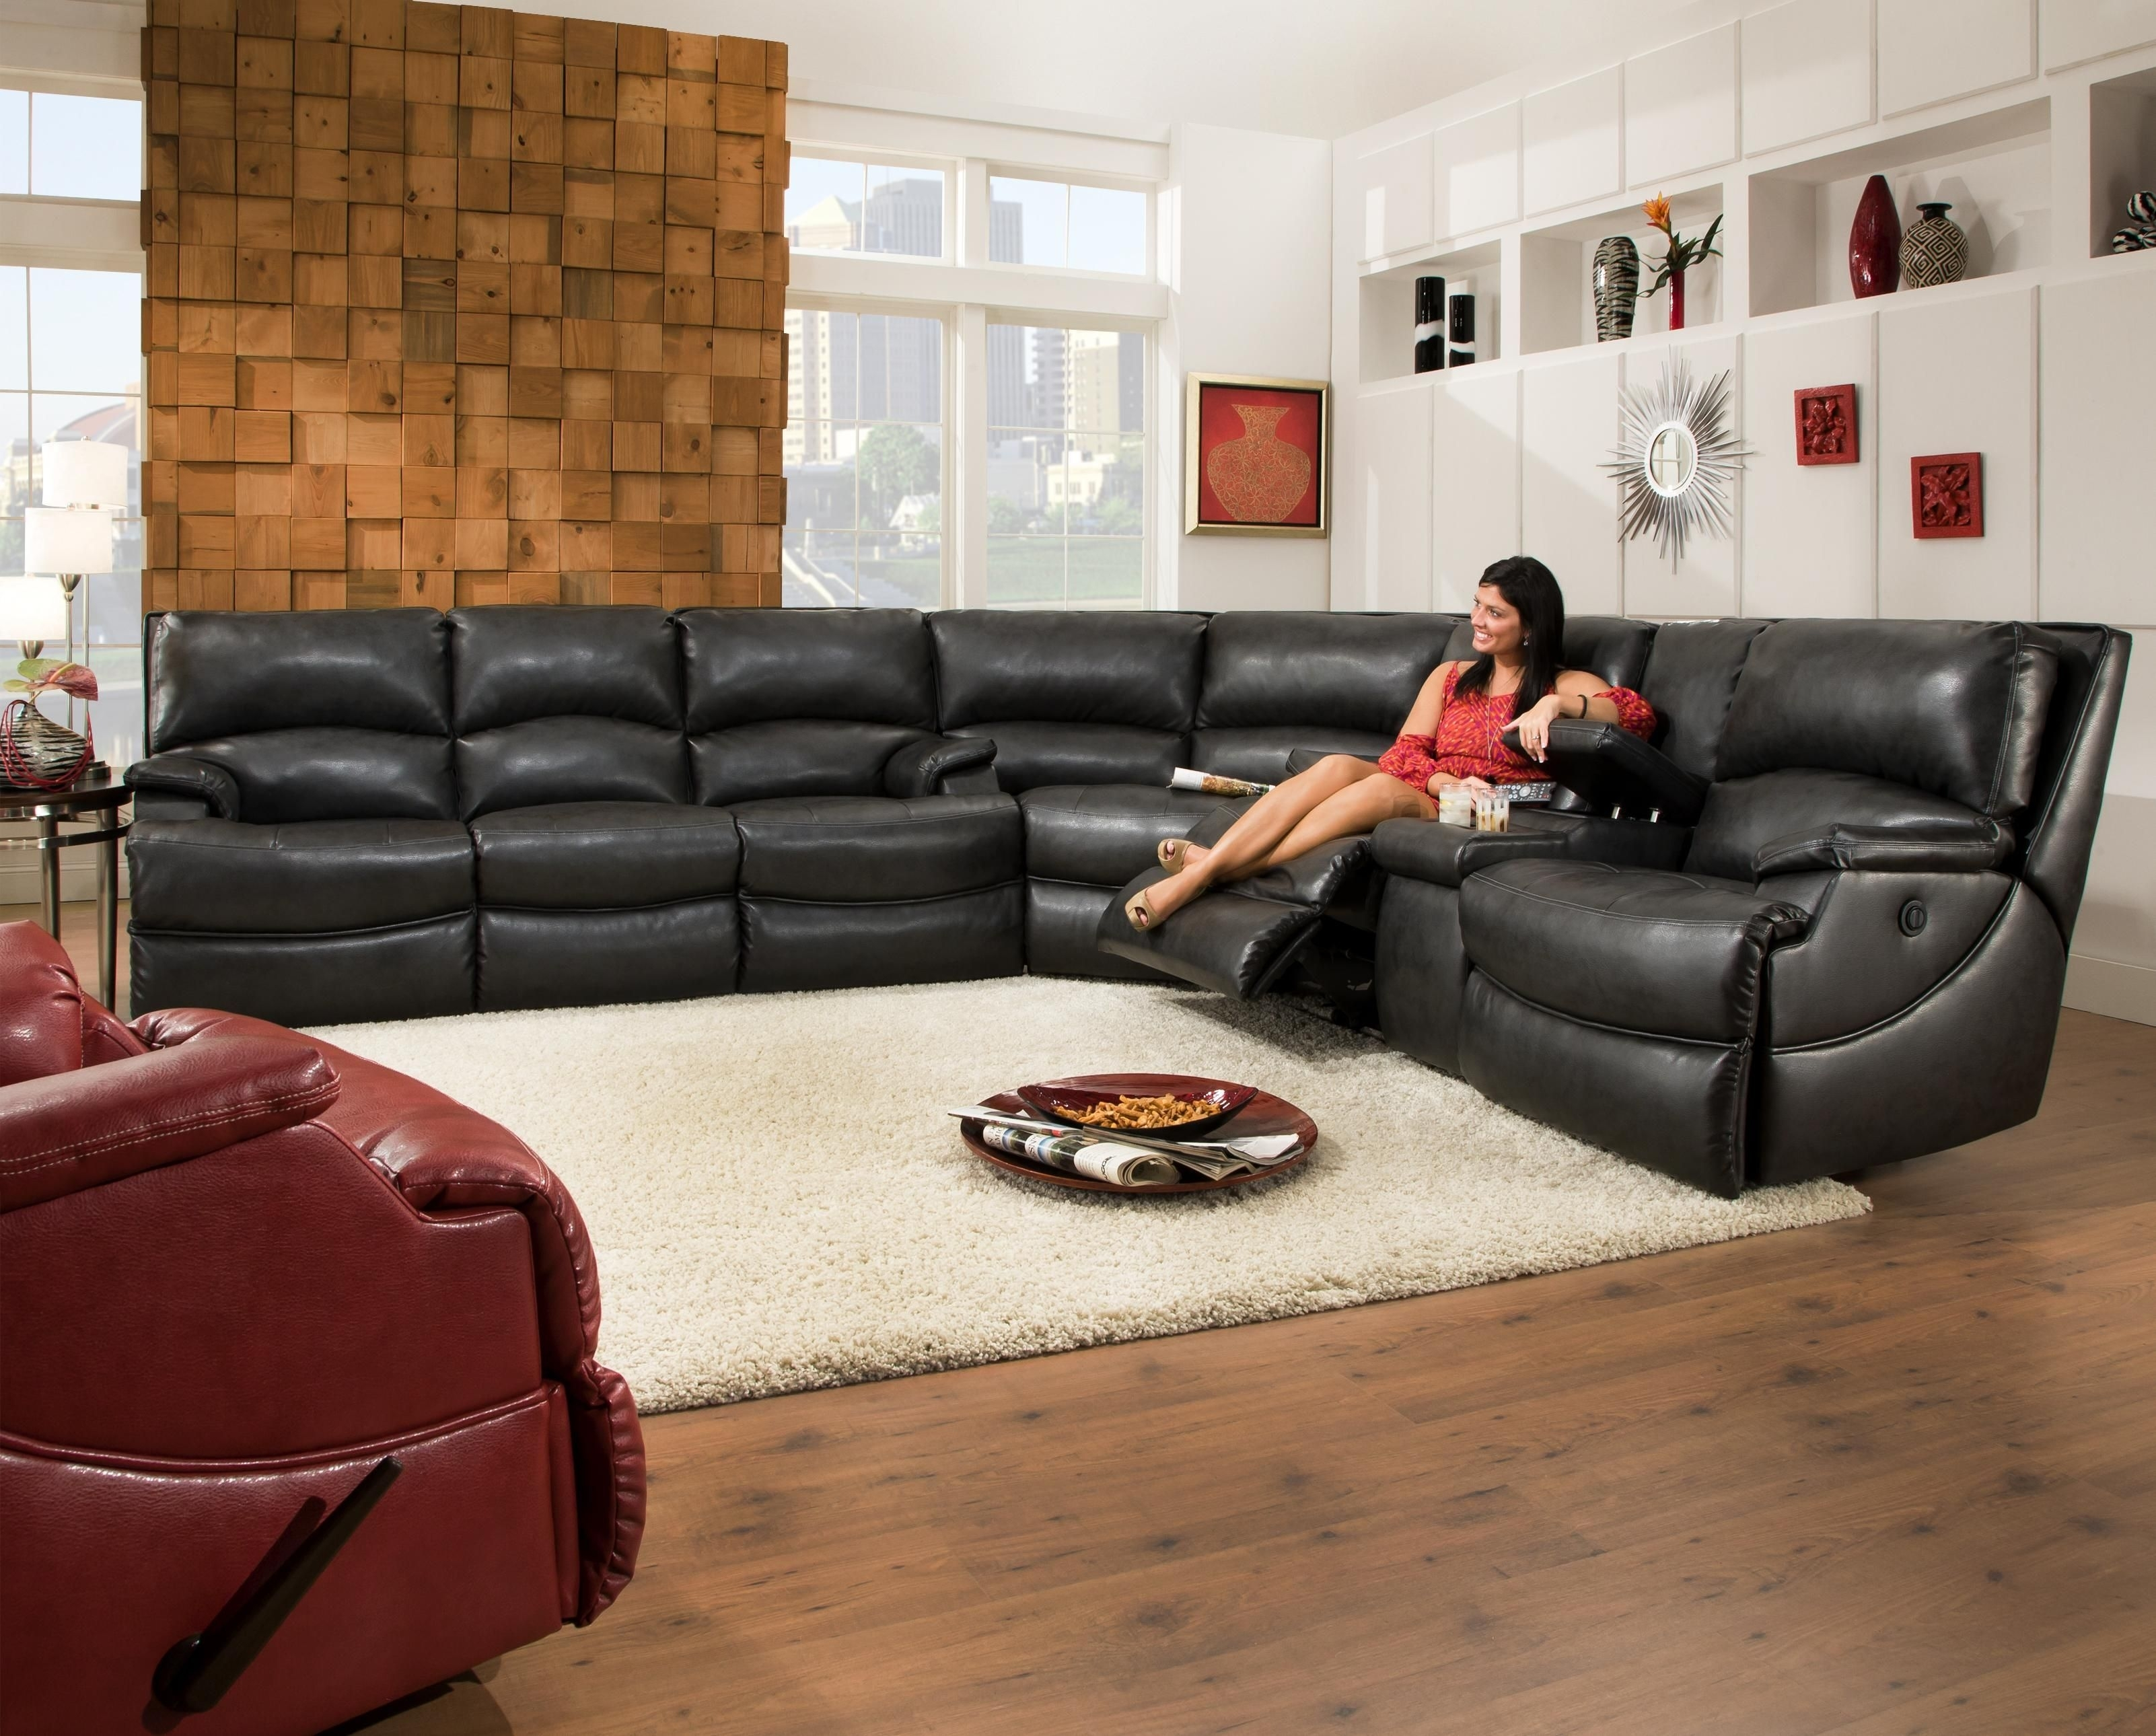 Southern Motion Shazam Six Seat Reclining Sectional Sofa With Cup For Sectional Sofas With Consoles (Image 9 of 10)